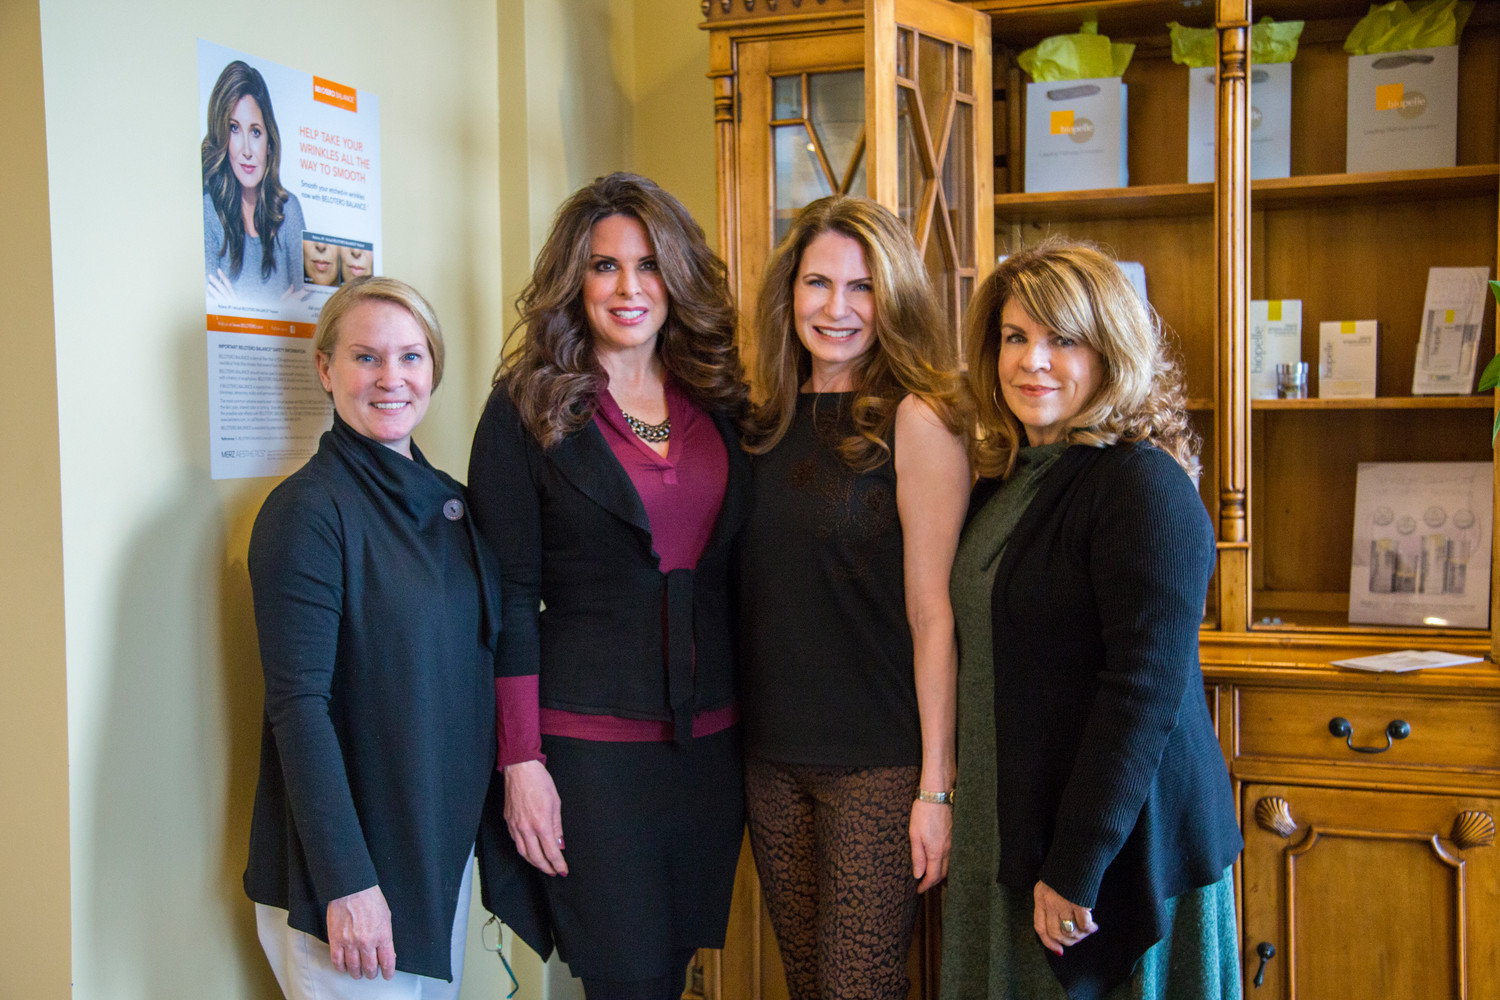 Cherri Bouchard, Reflexologist; Jennifer Serafin, Laser Specialist and Owner; Pamela Lutes, RN, BSN, Injection Specialist and Owner; Donna Procaccianti, Office Manager